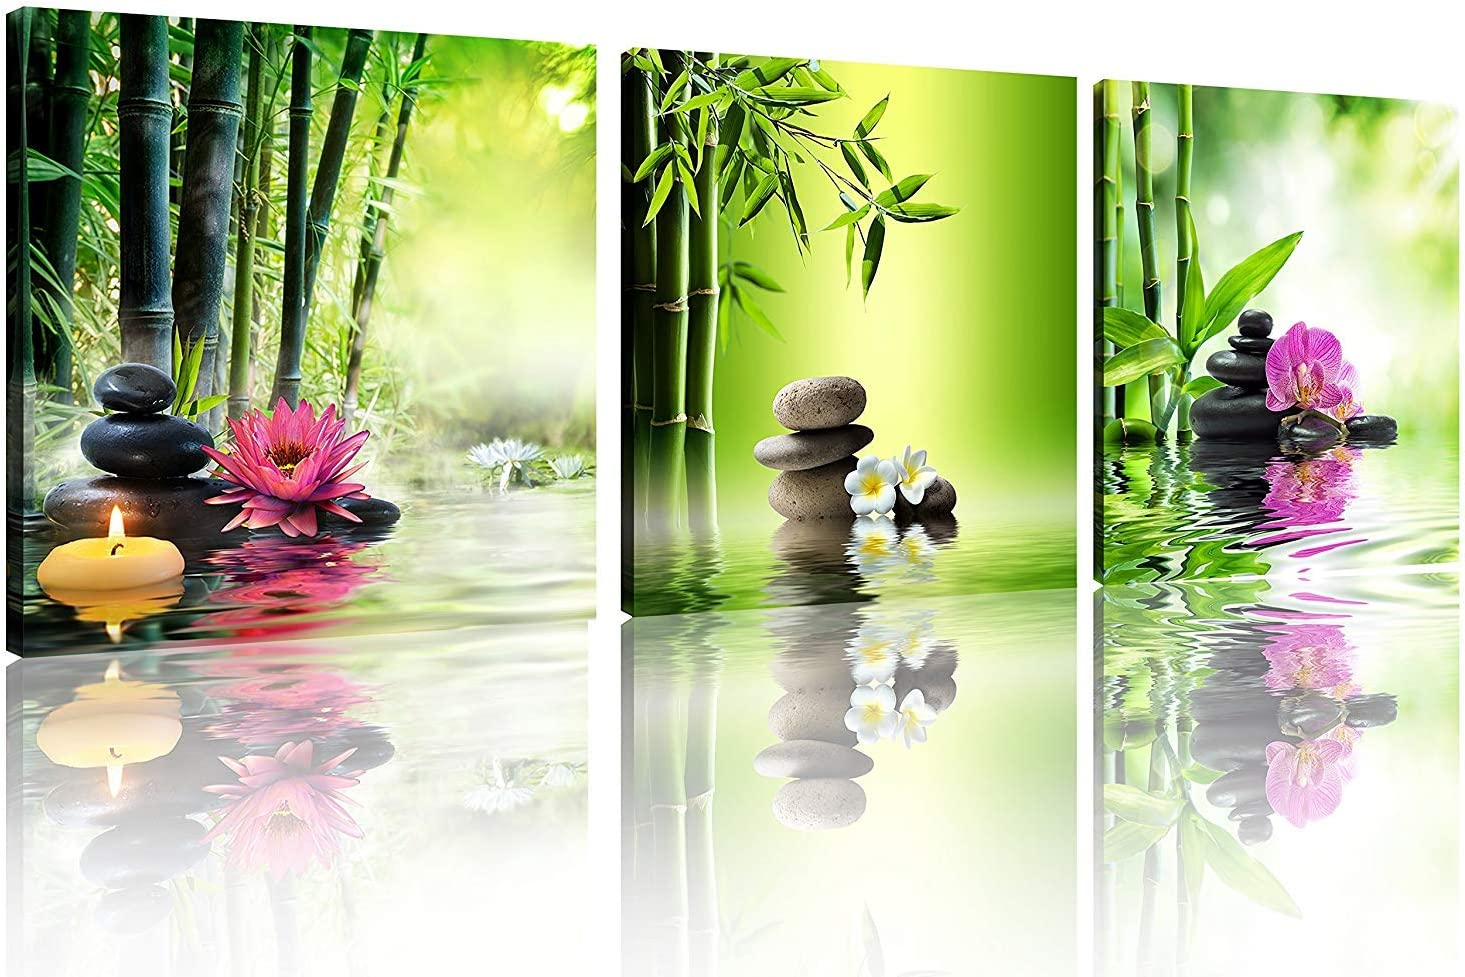 TutuBeer 3 Panels Zen Art Spa Decor Green Bamboo Decor Pink Waterlily and Frangipani Pictures Spa Decor for Bathroom Zen Canvas Painting Prints Art Zen Picture for Home Decor Decoration,Ready to Hang